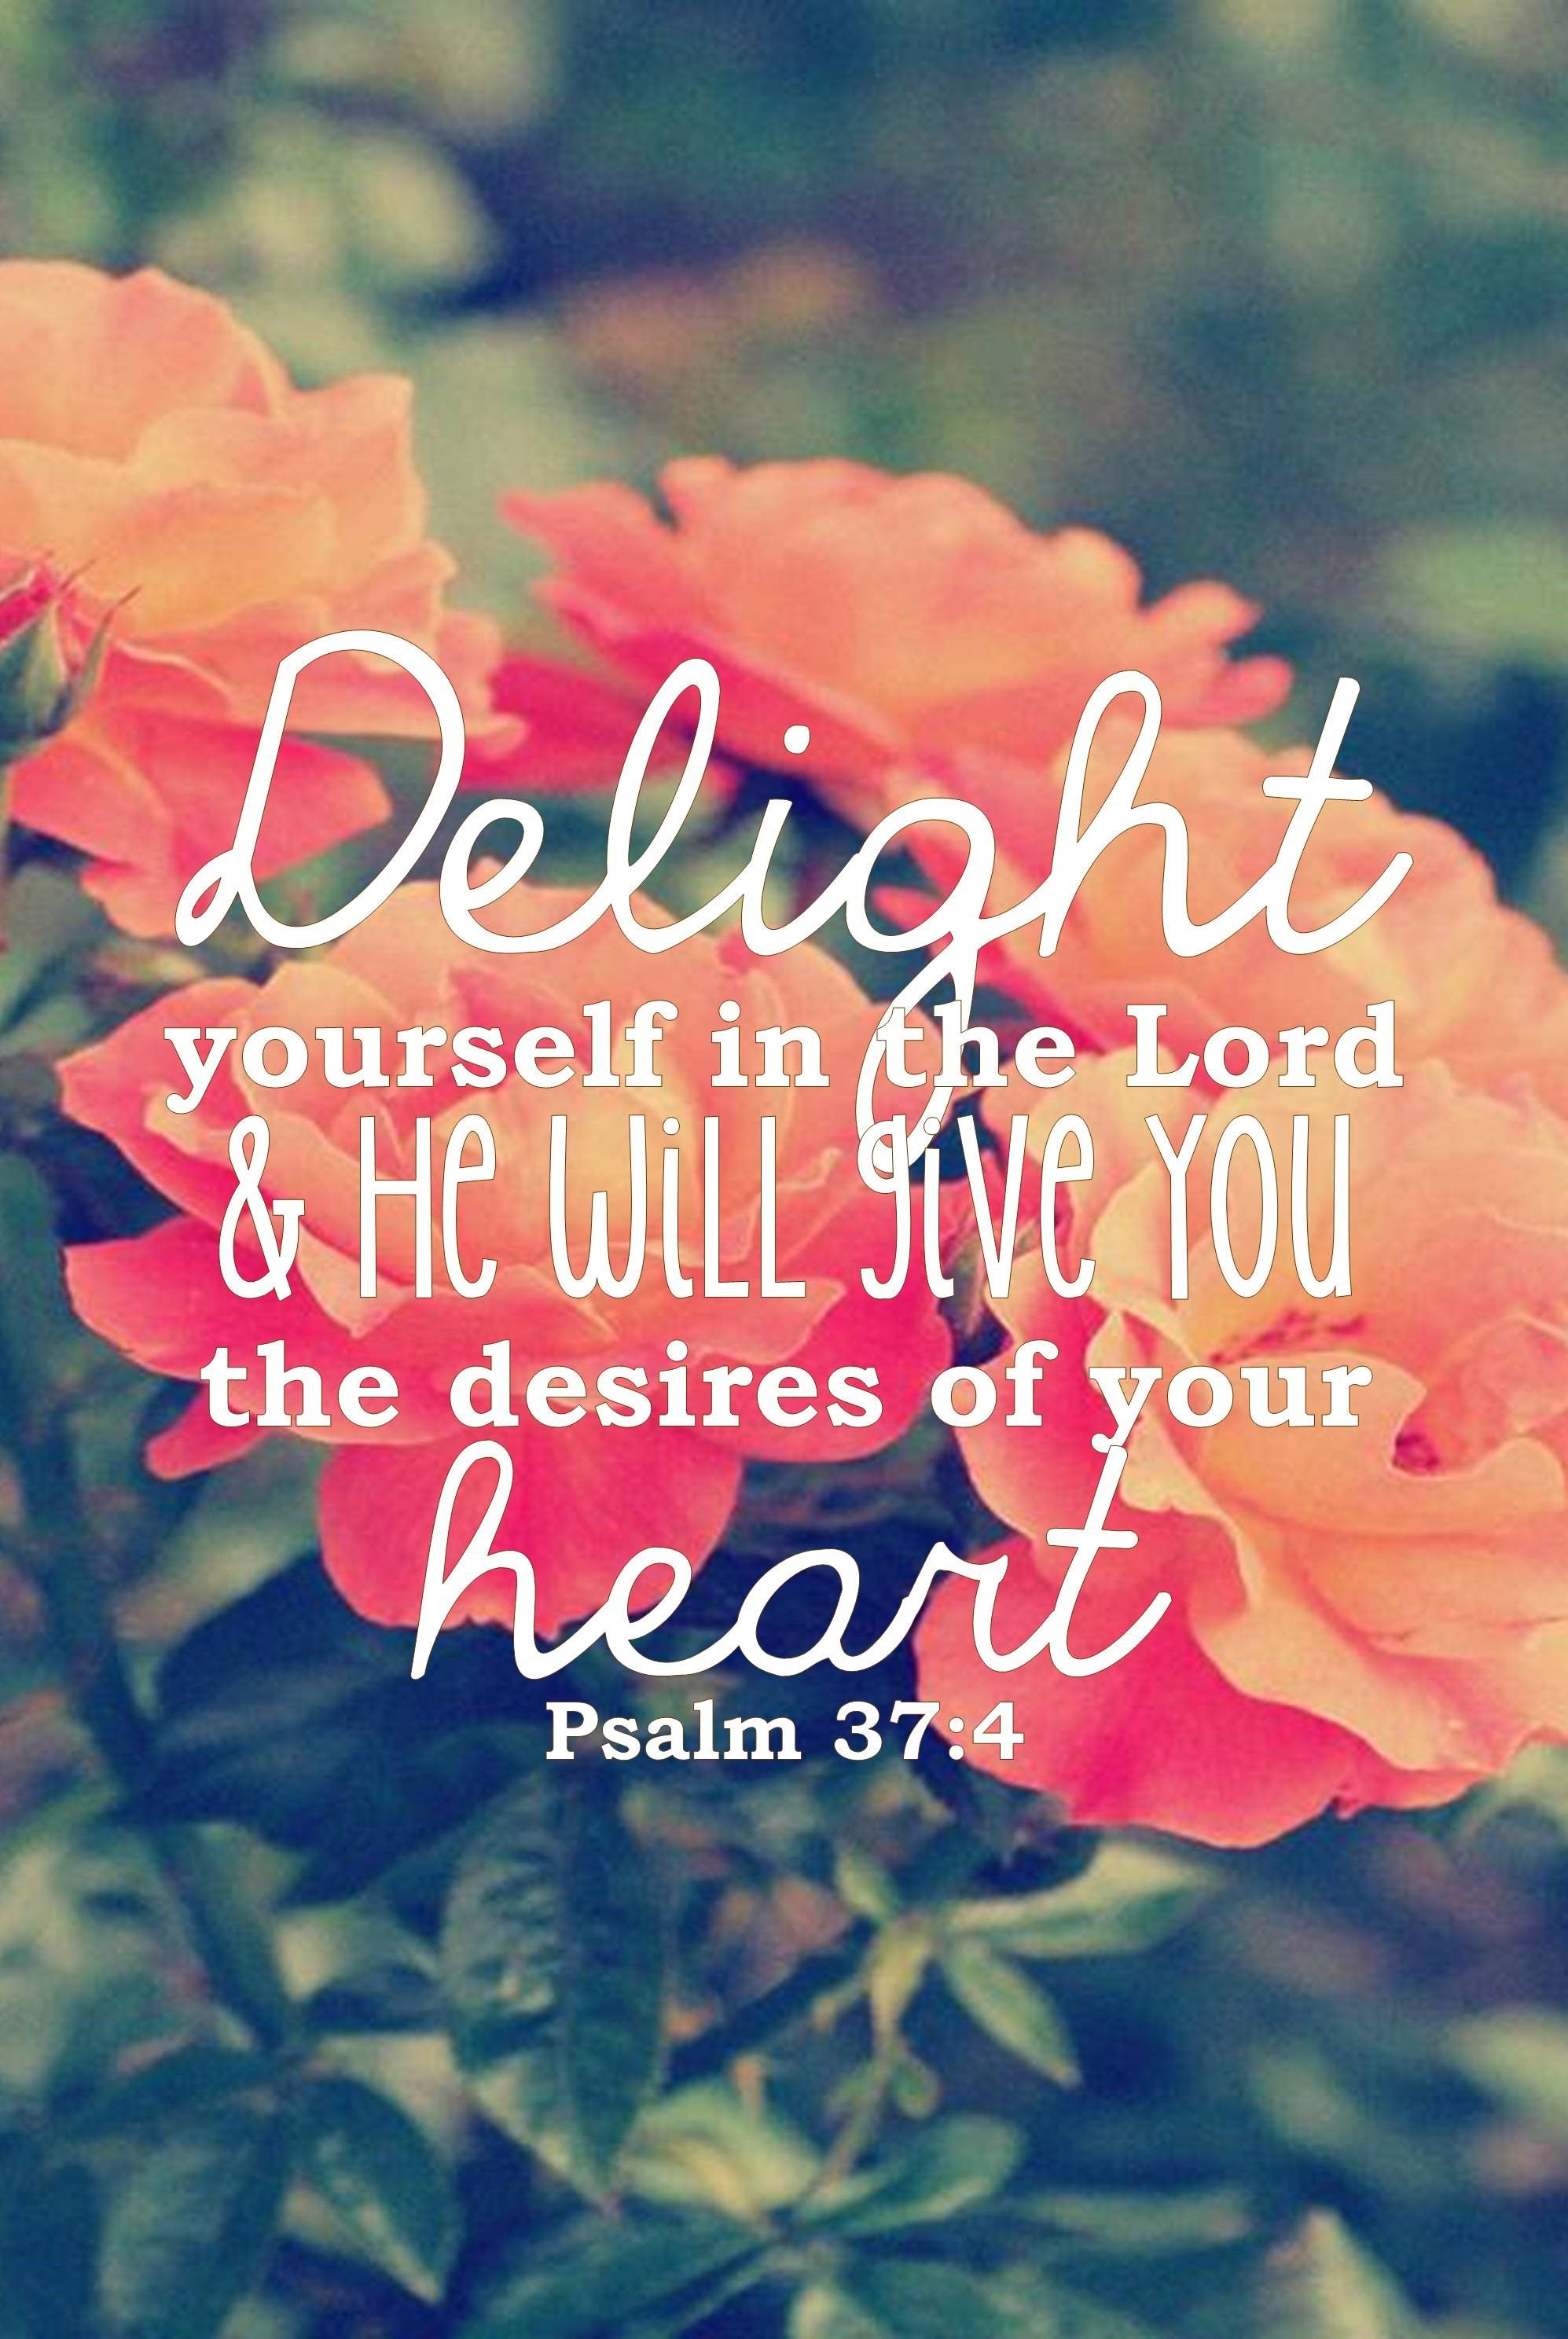 image for girly wallpaper quotes tumblr faith pinterest girly